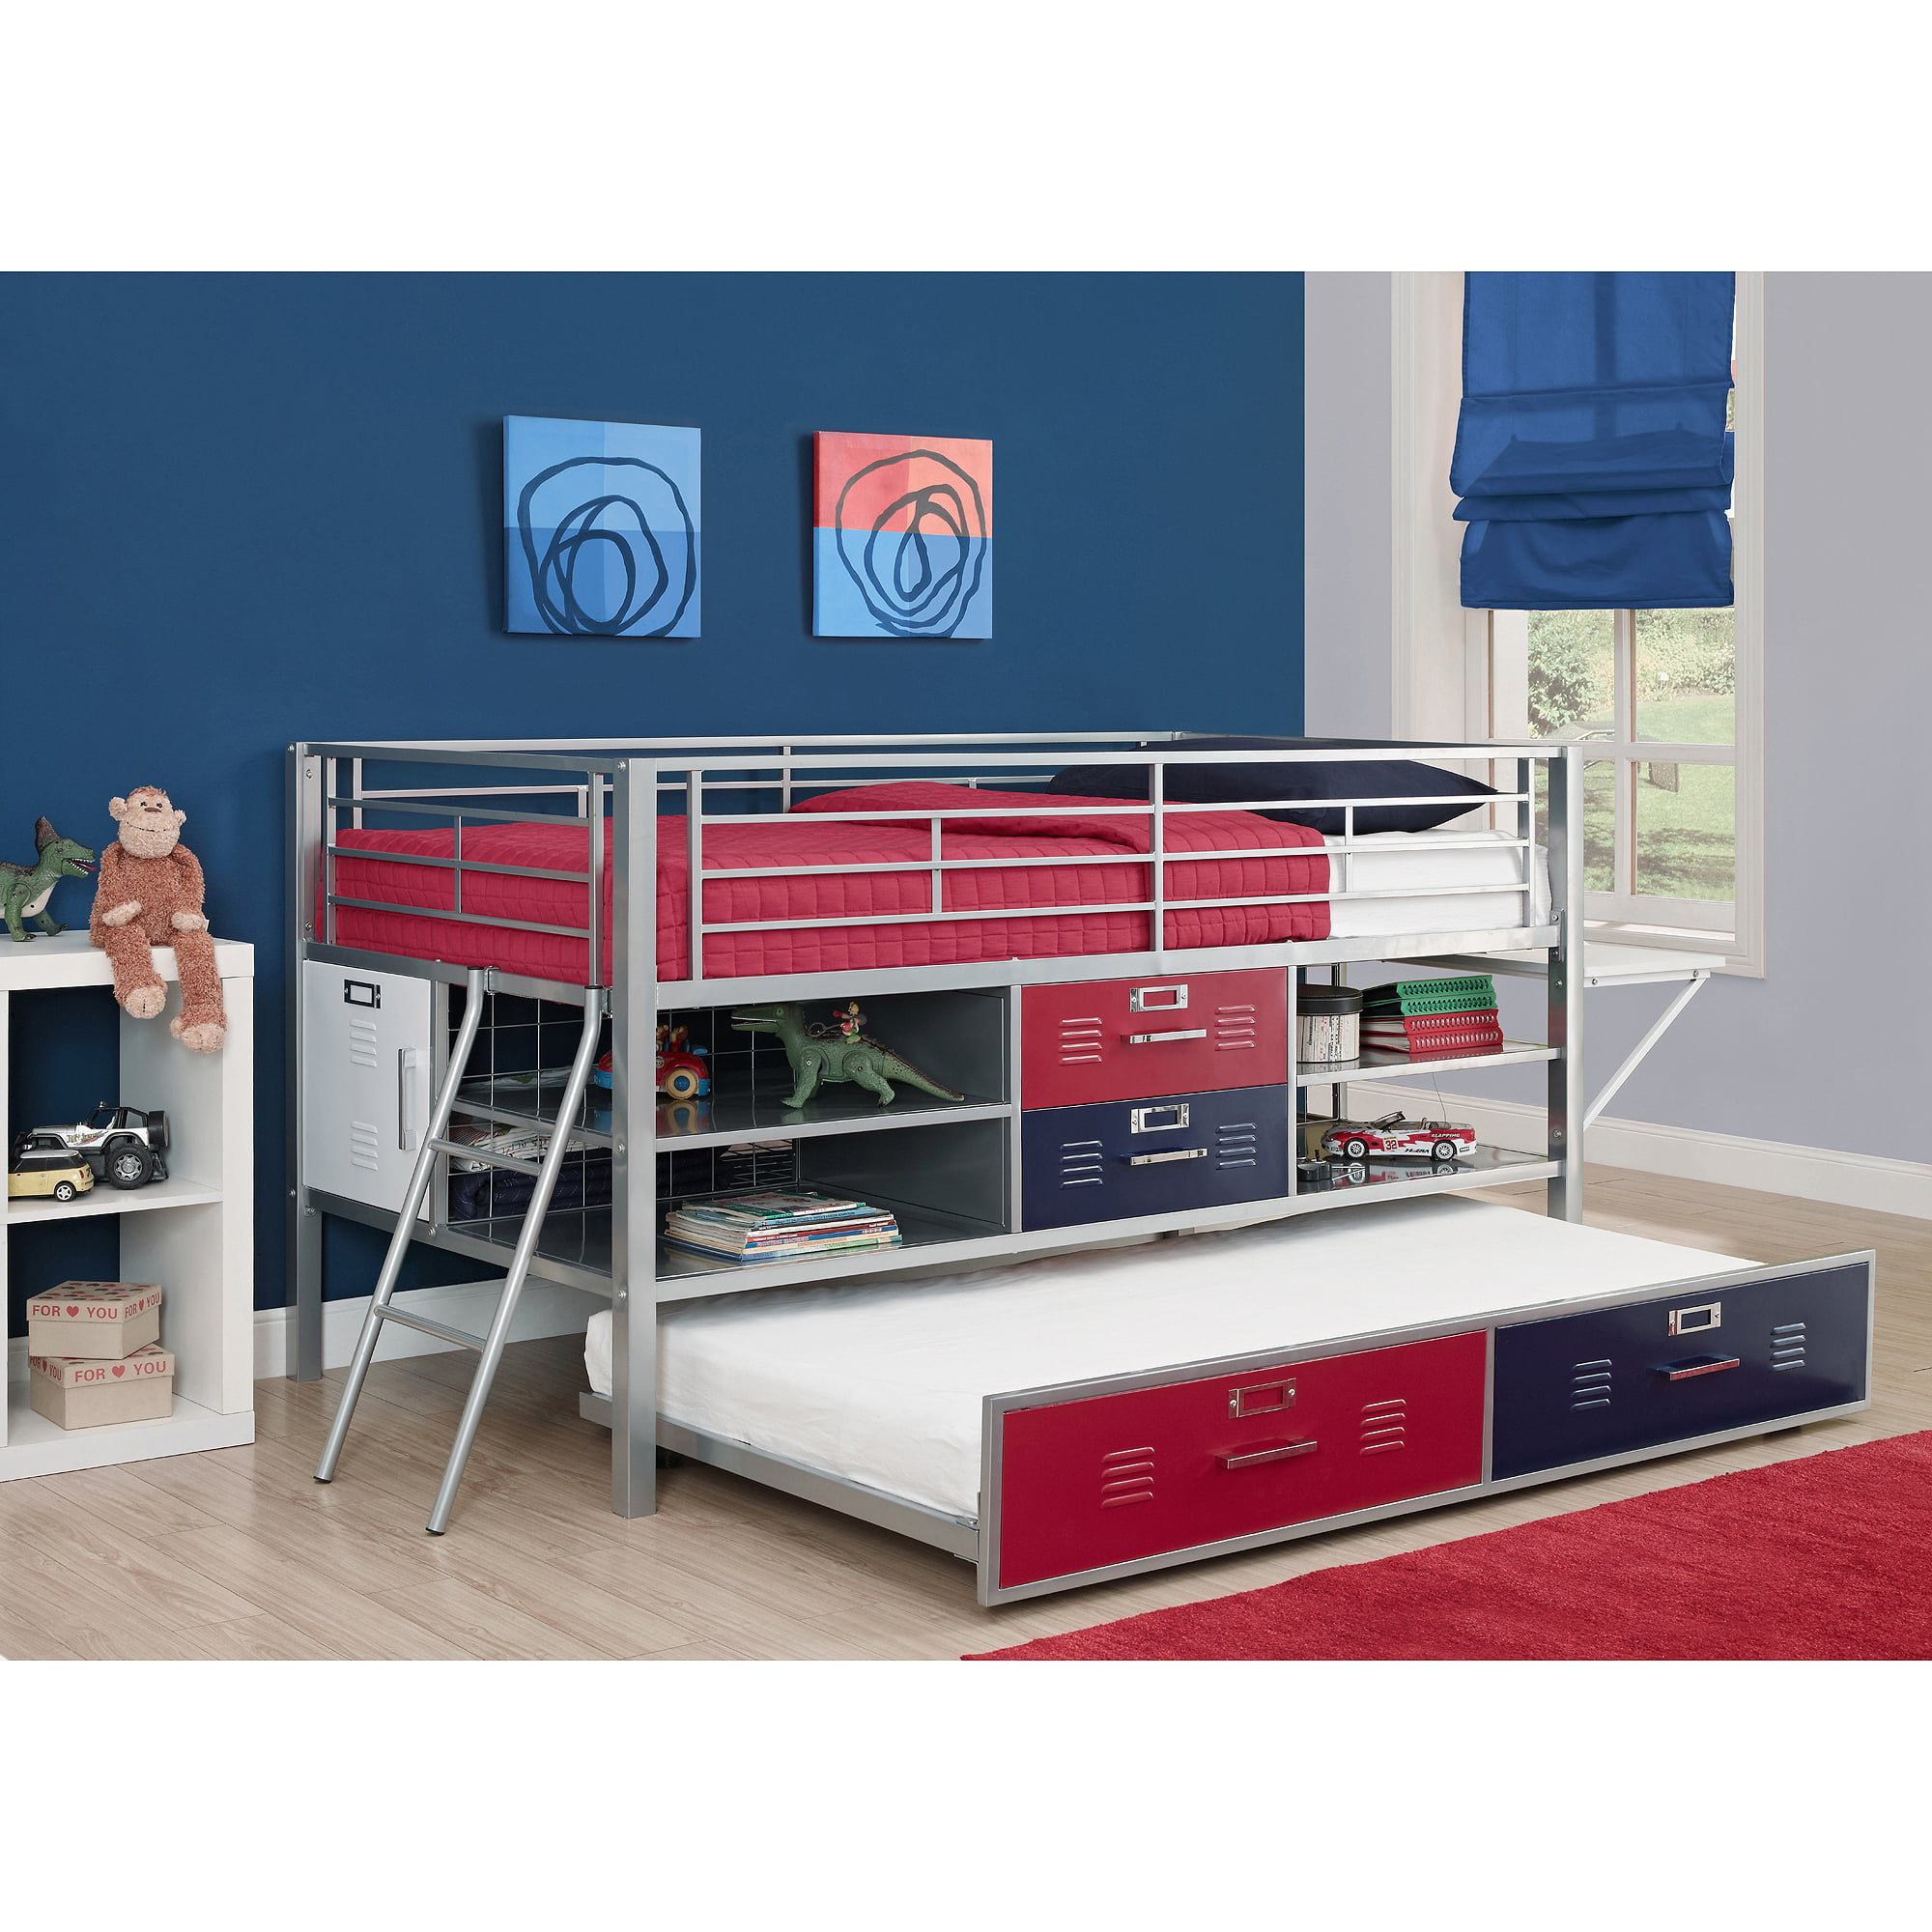 Trundle For Junior Shelf And Storage Loft Bed, Red/Blue   Walmart.com